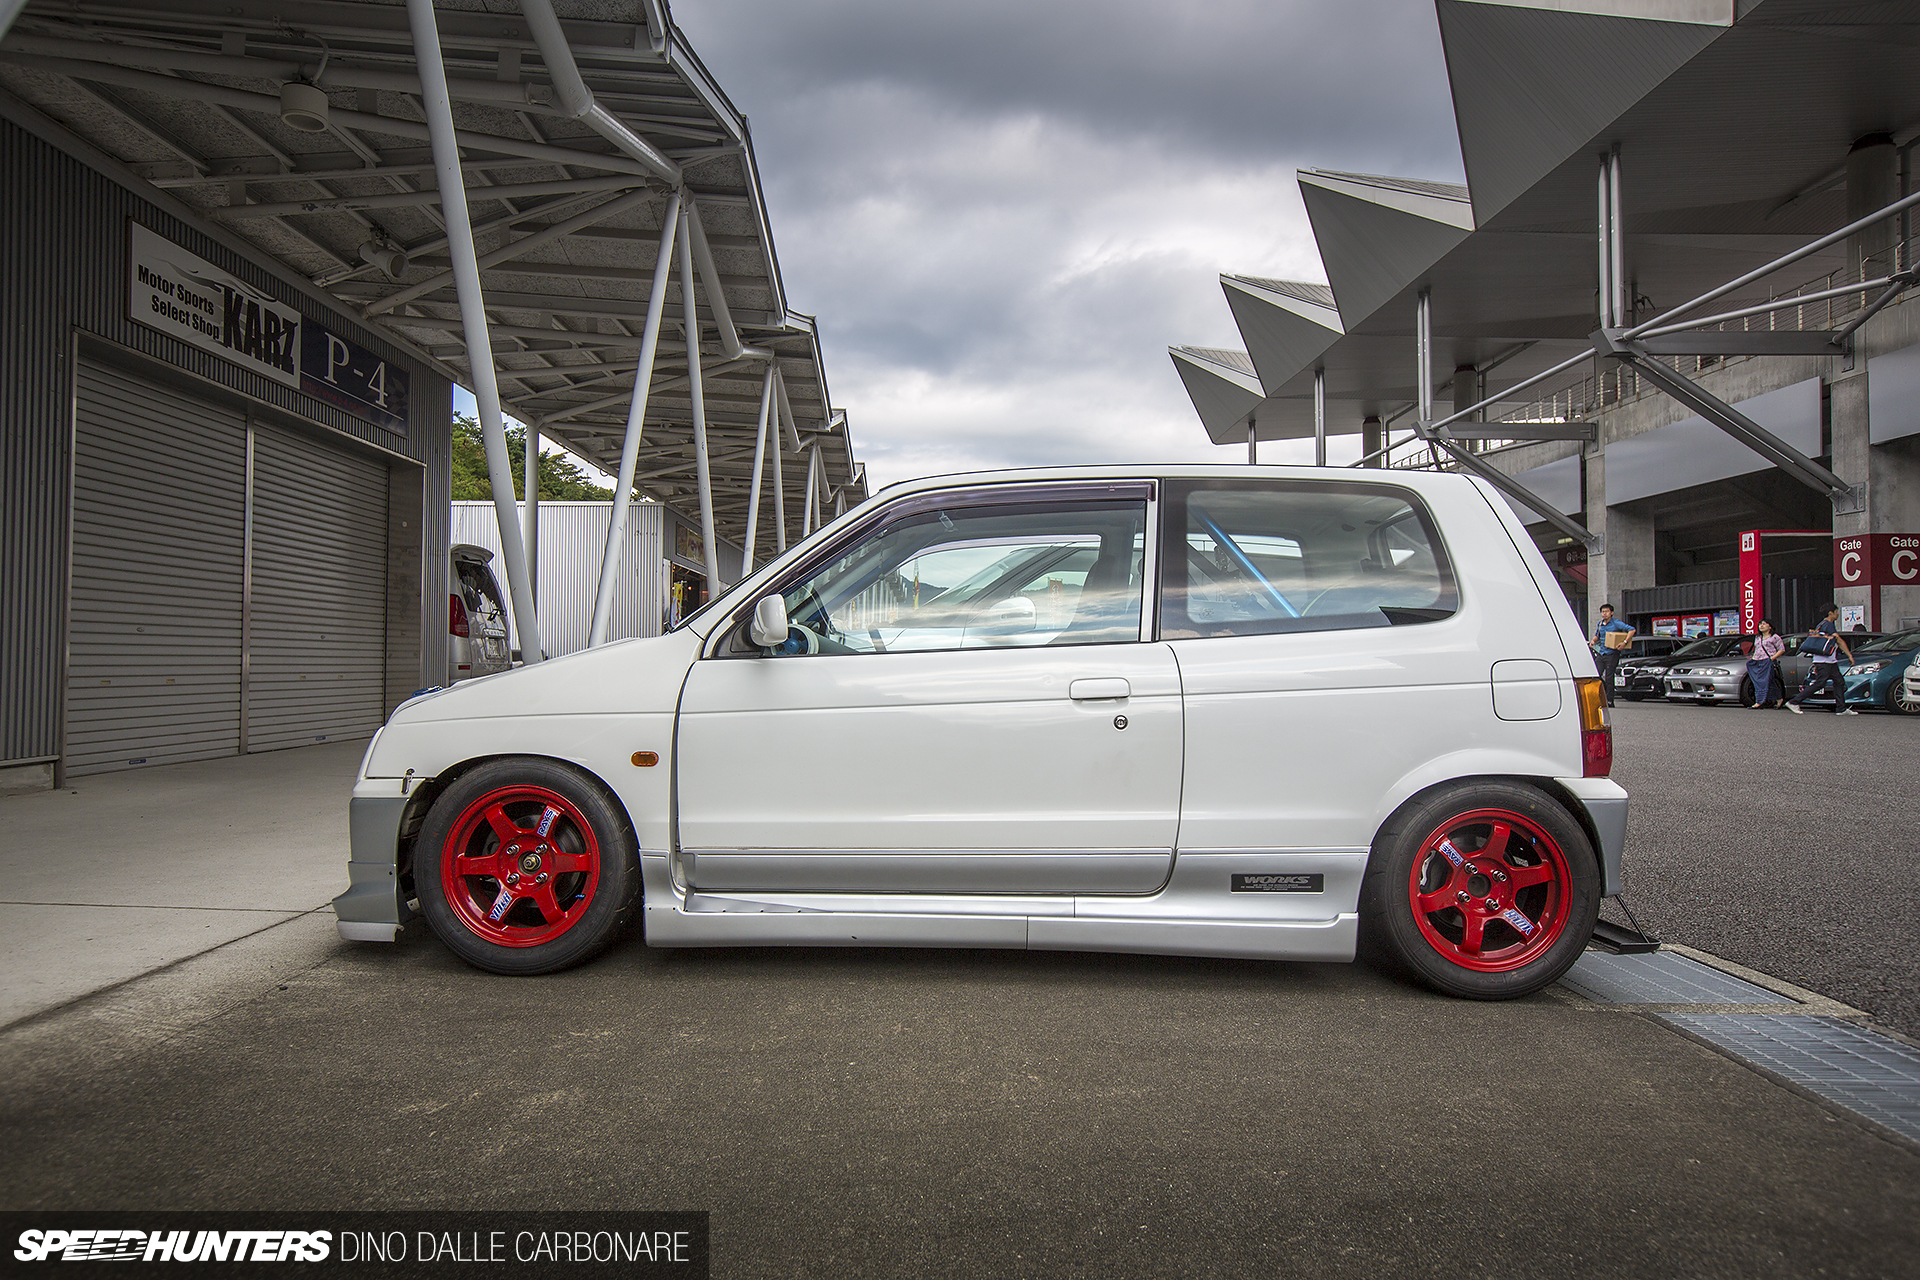 An Alto Works That Punches Above Its Weight - Speedhunters